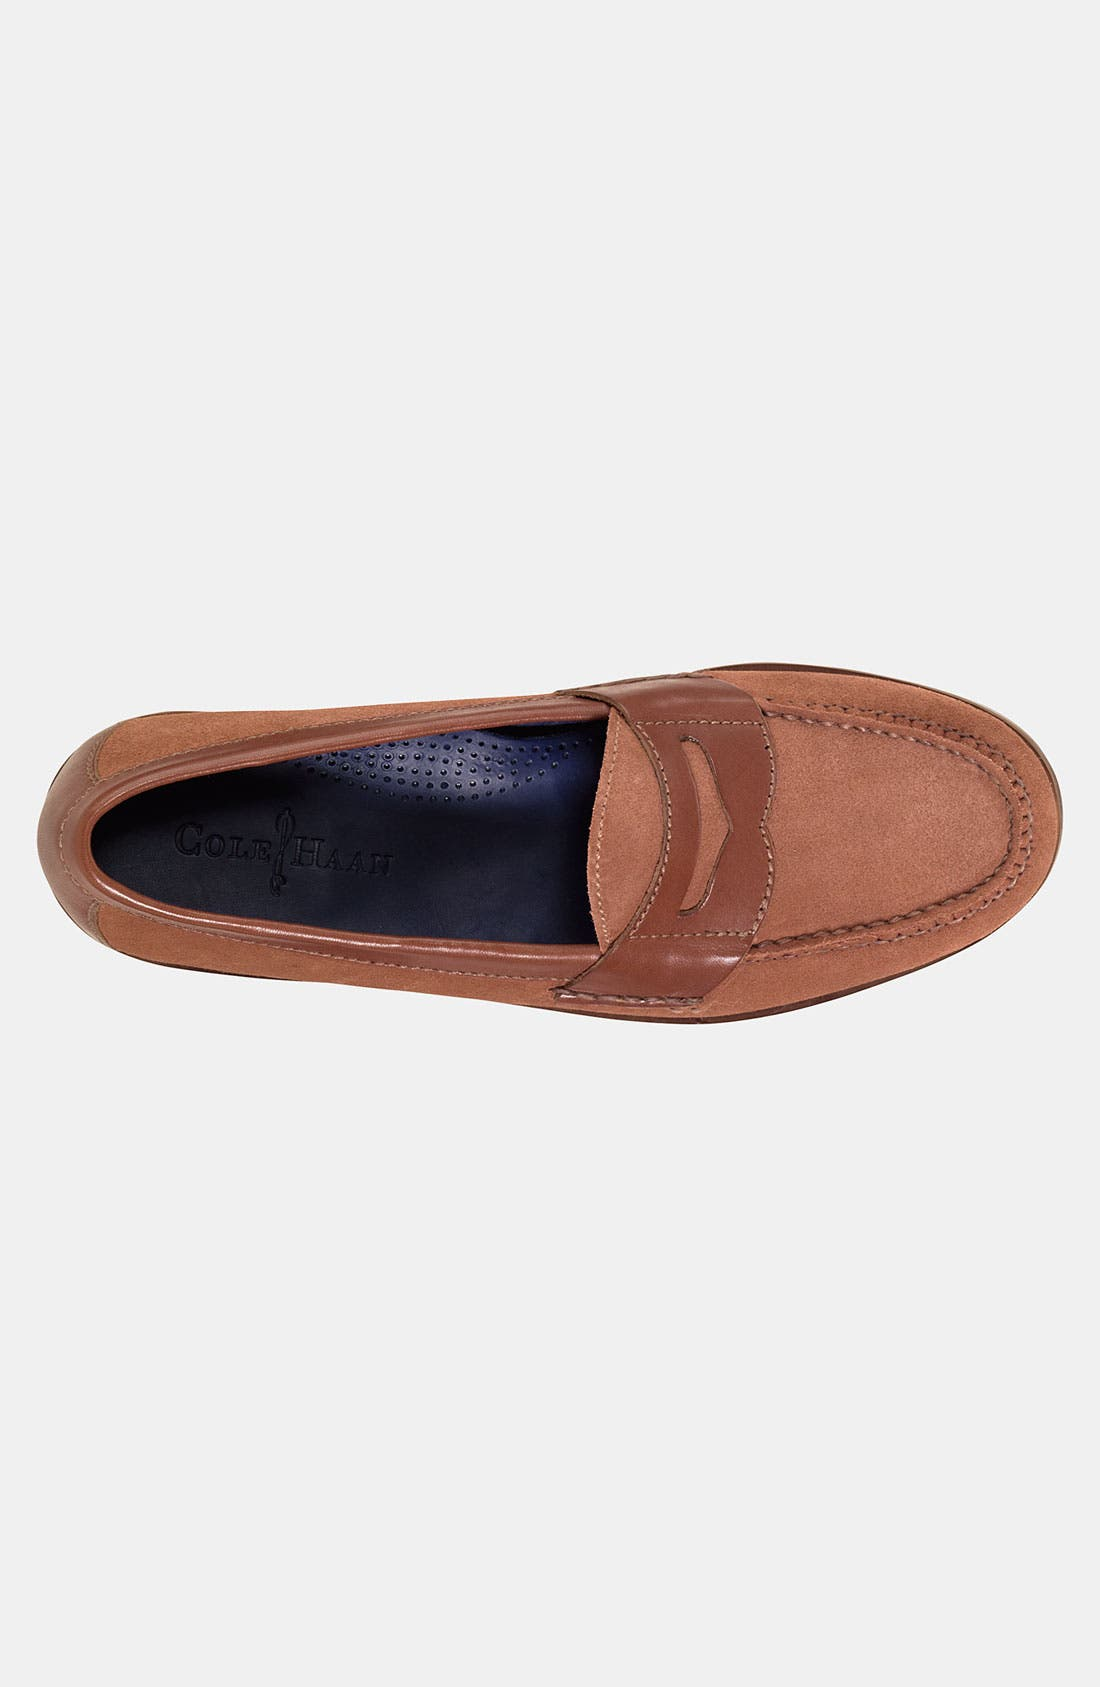 Alternate Image 3  - Cole Haan 'Pinch' Penny Loafer